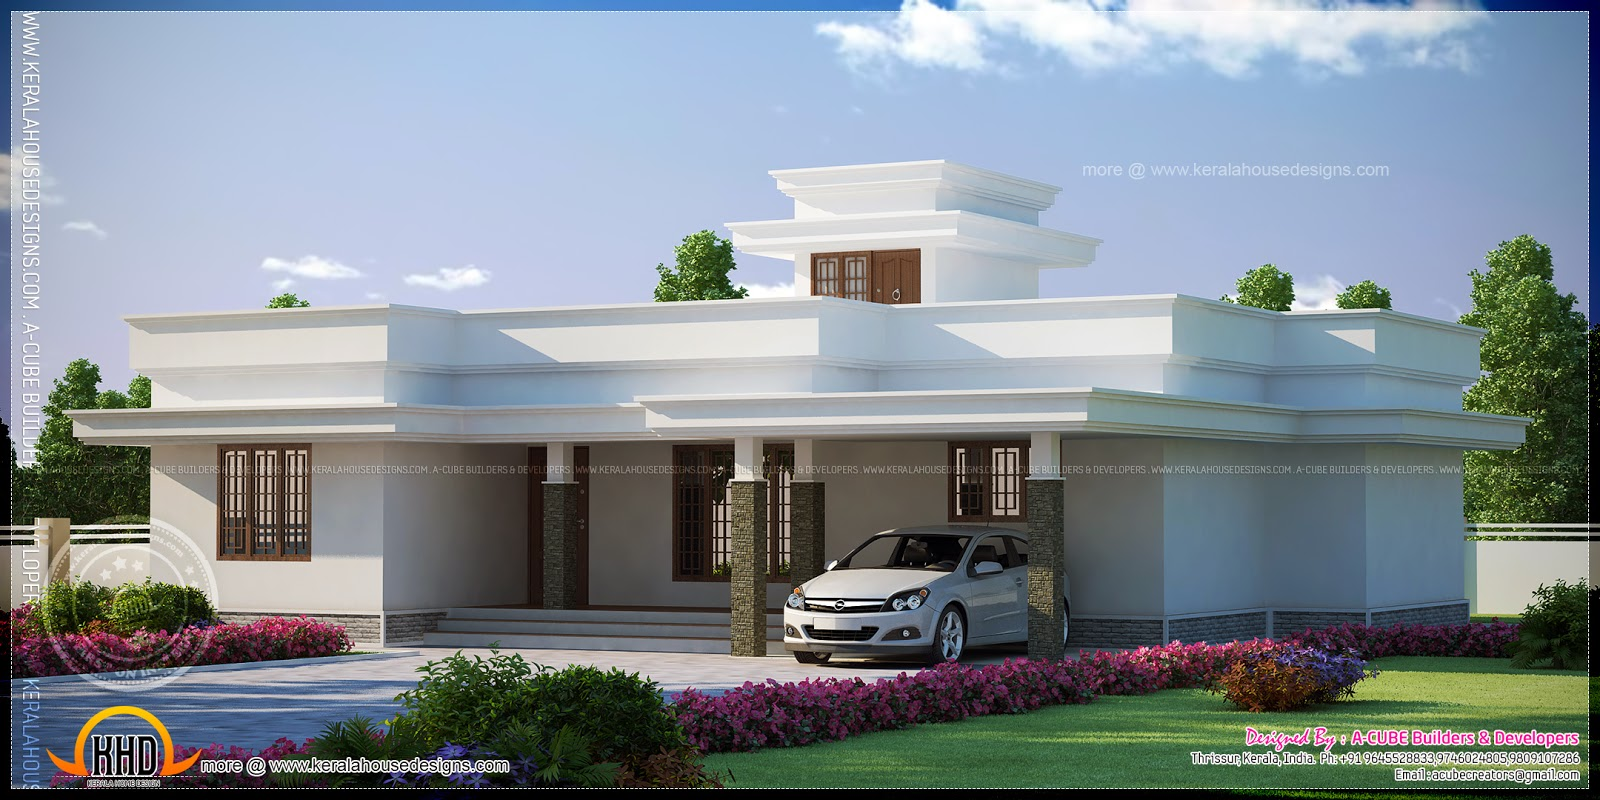 Contemporary Flat Roof Single Storied House Model Indian House Plans